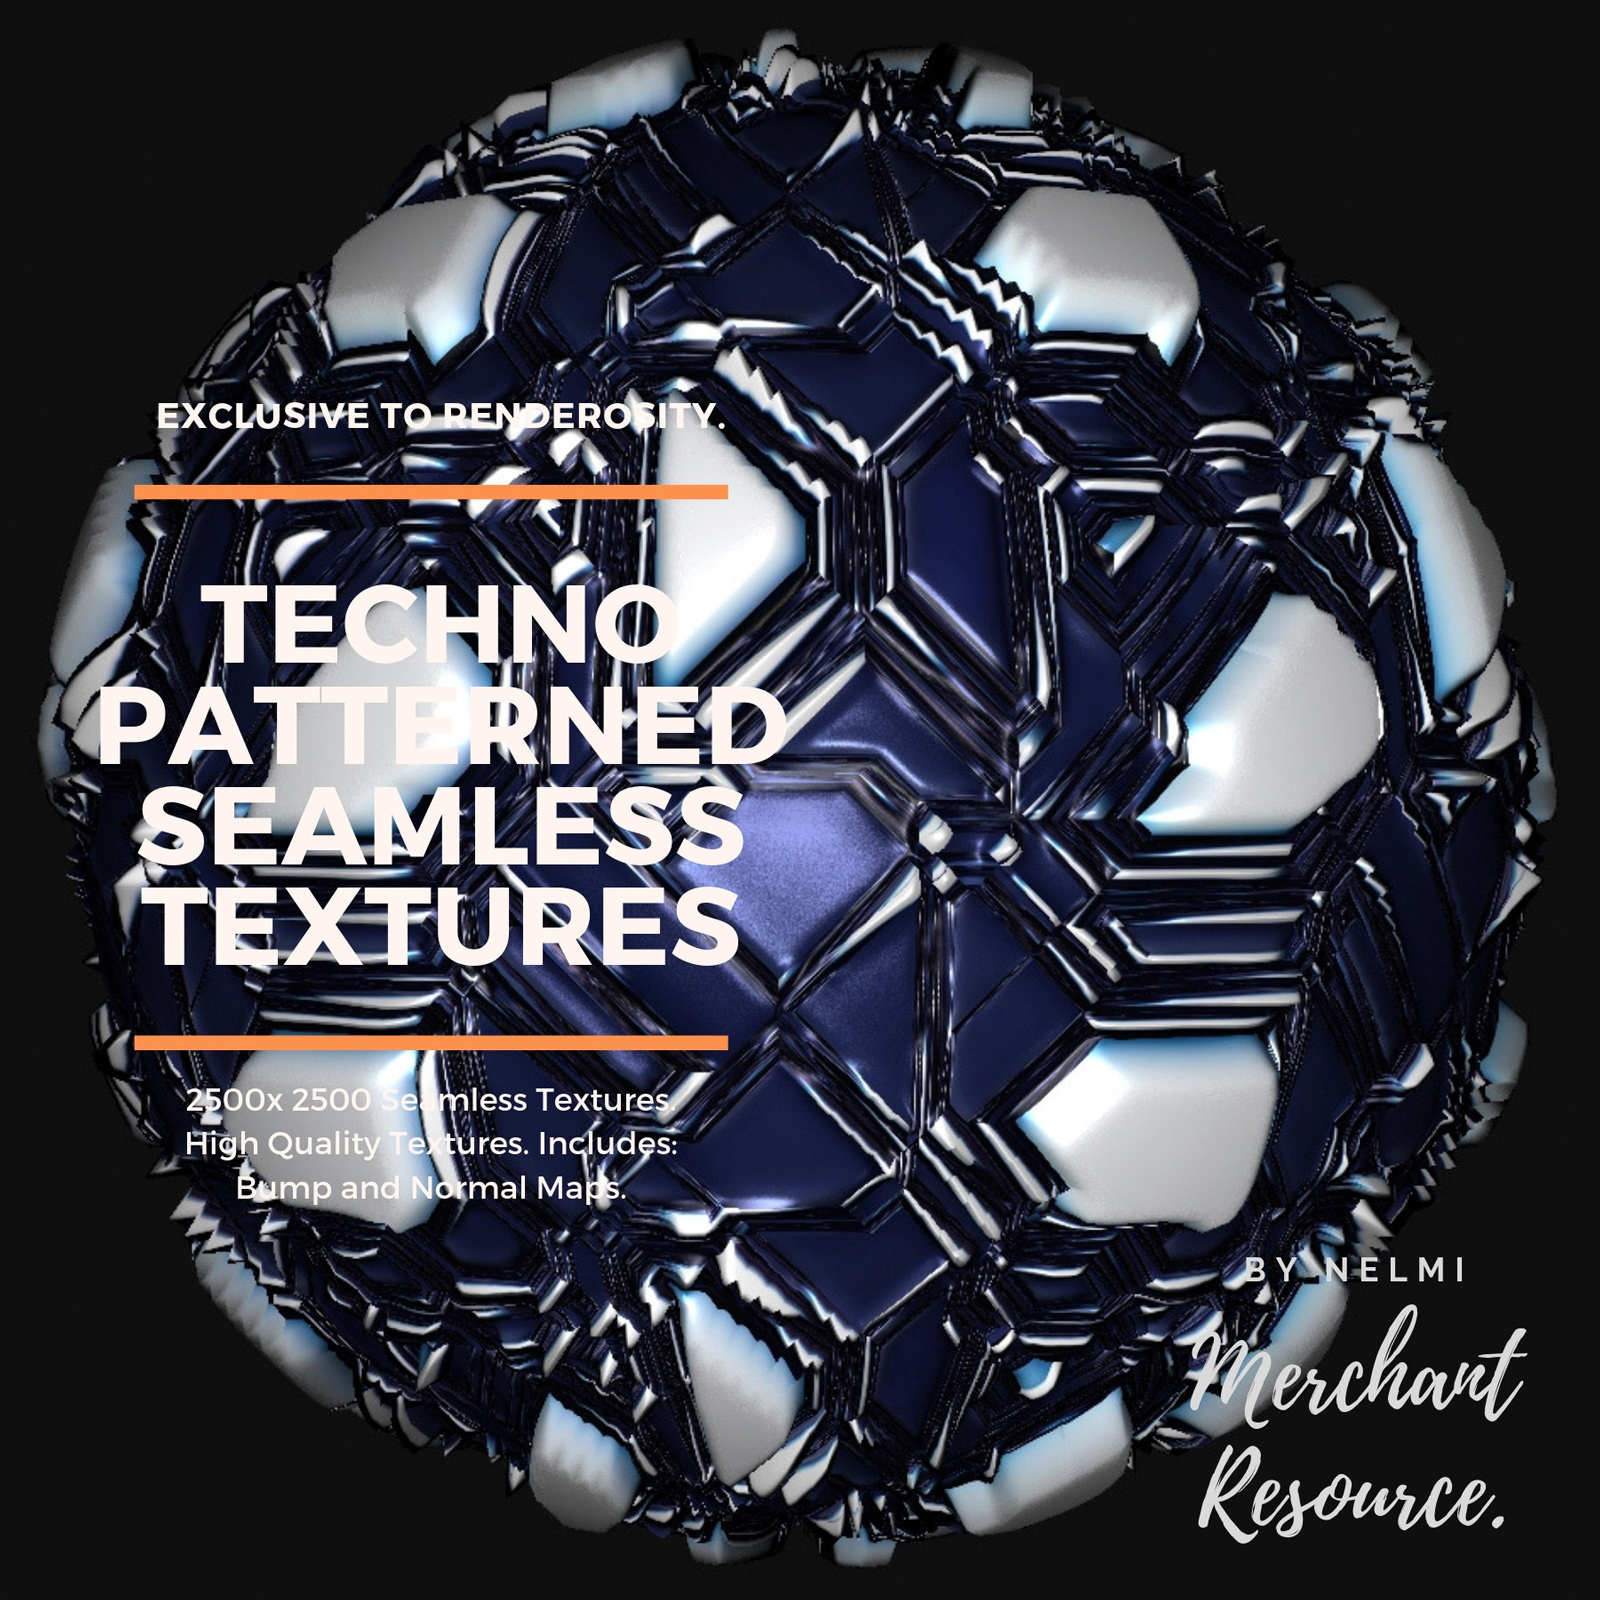 13 Seamless Techno Robot Textures with Texture Maps